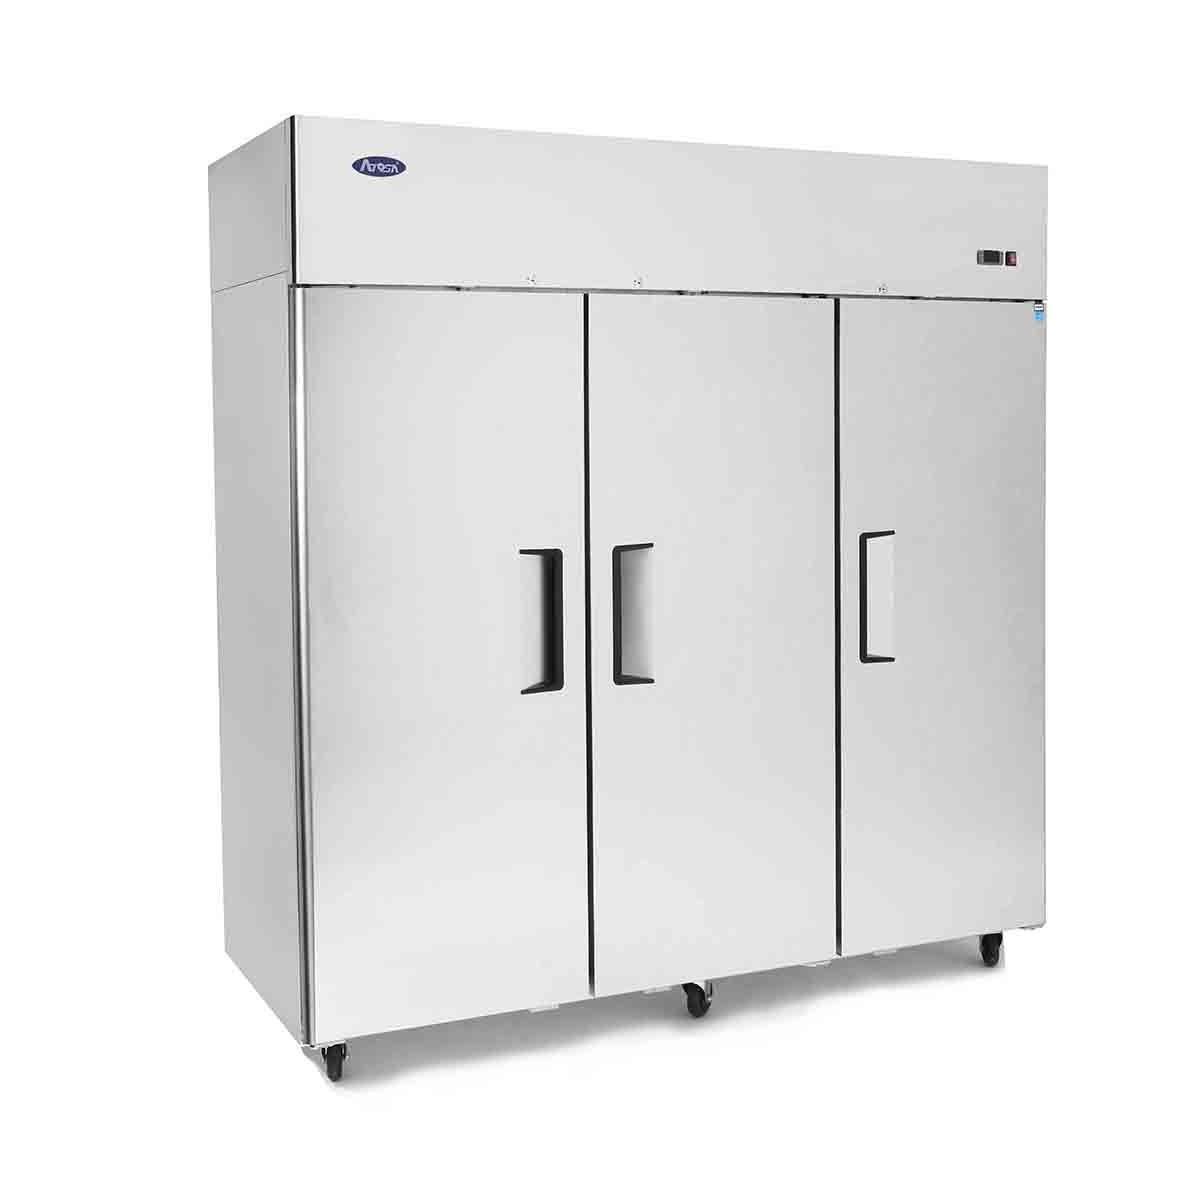 Top Mount (3) Three Door Freezer Dimensions: